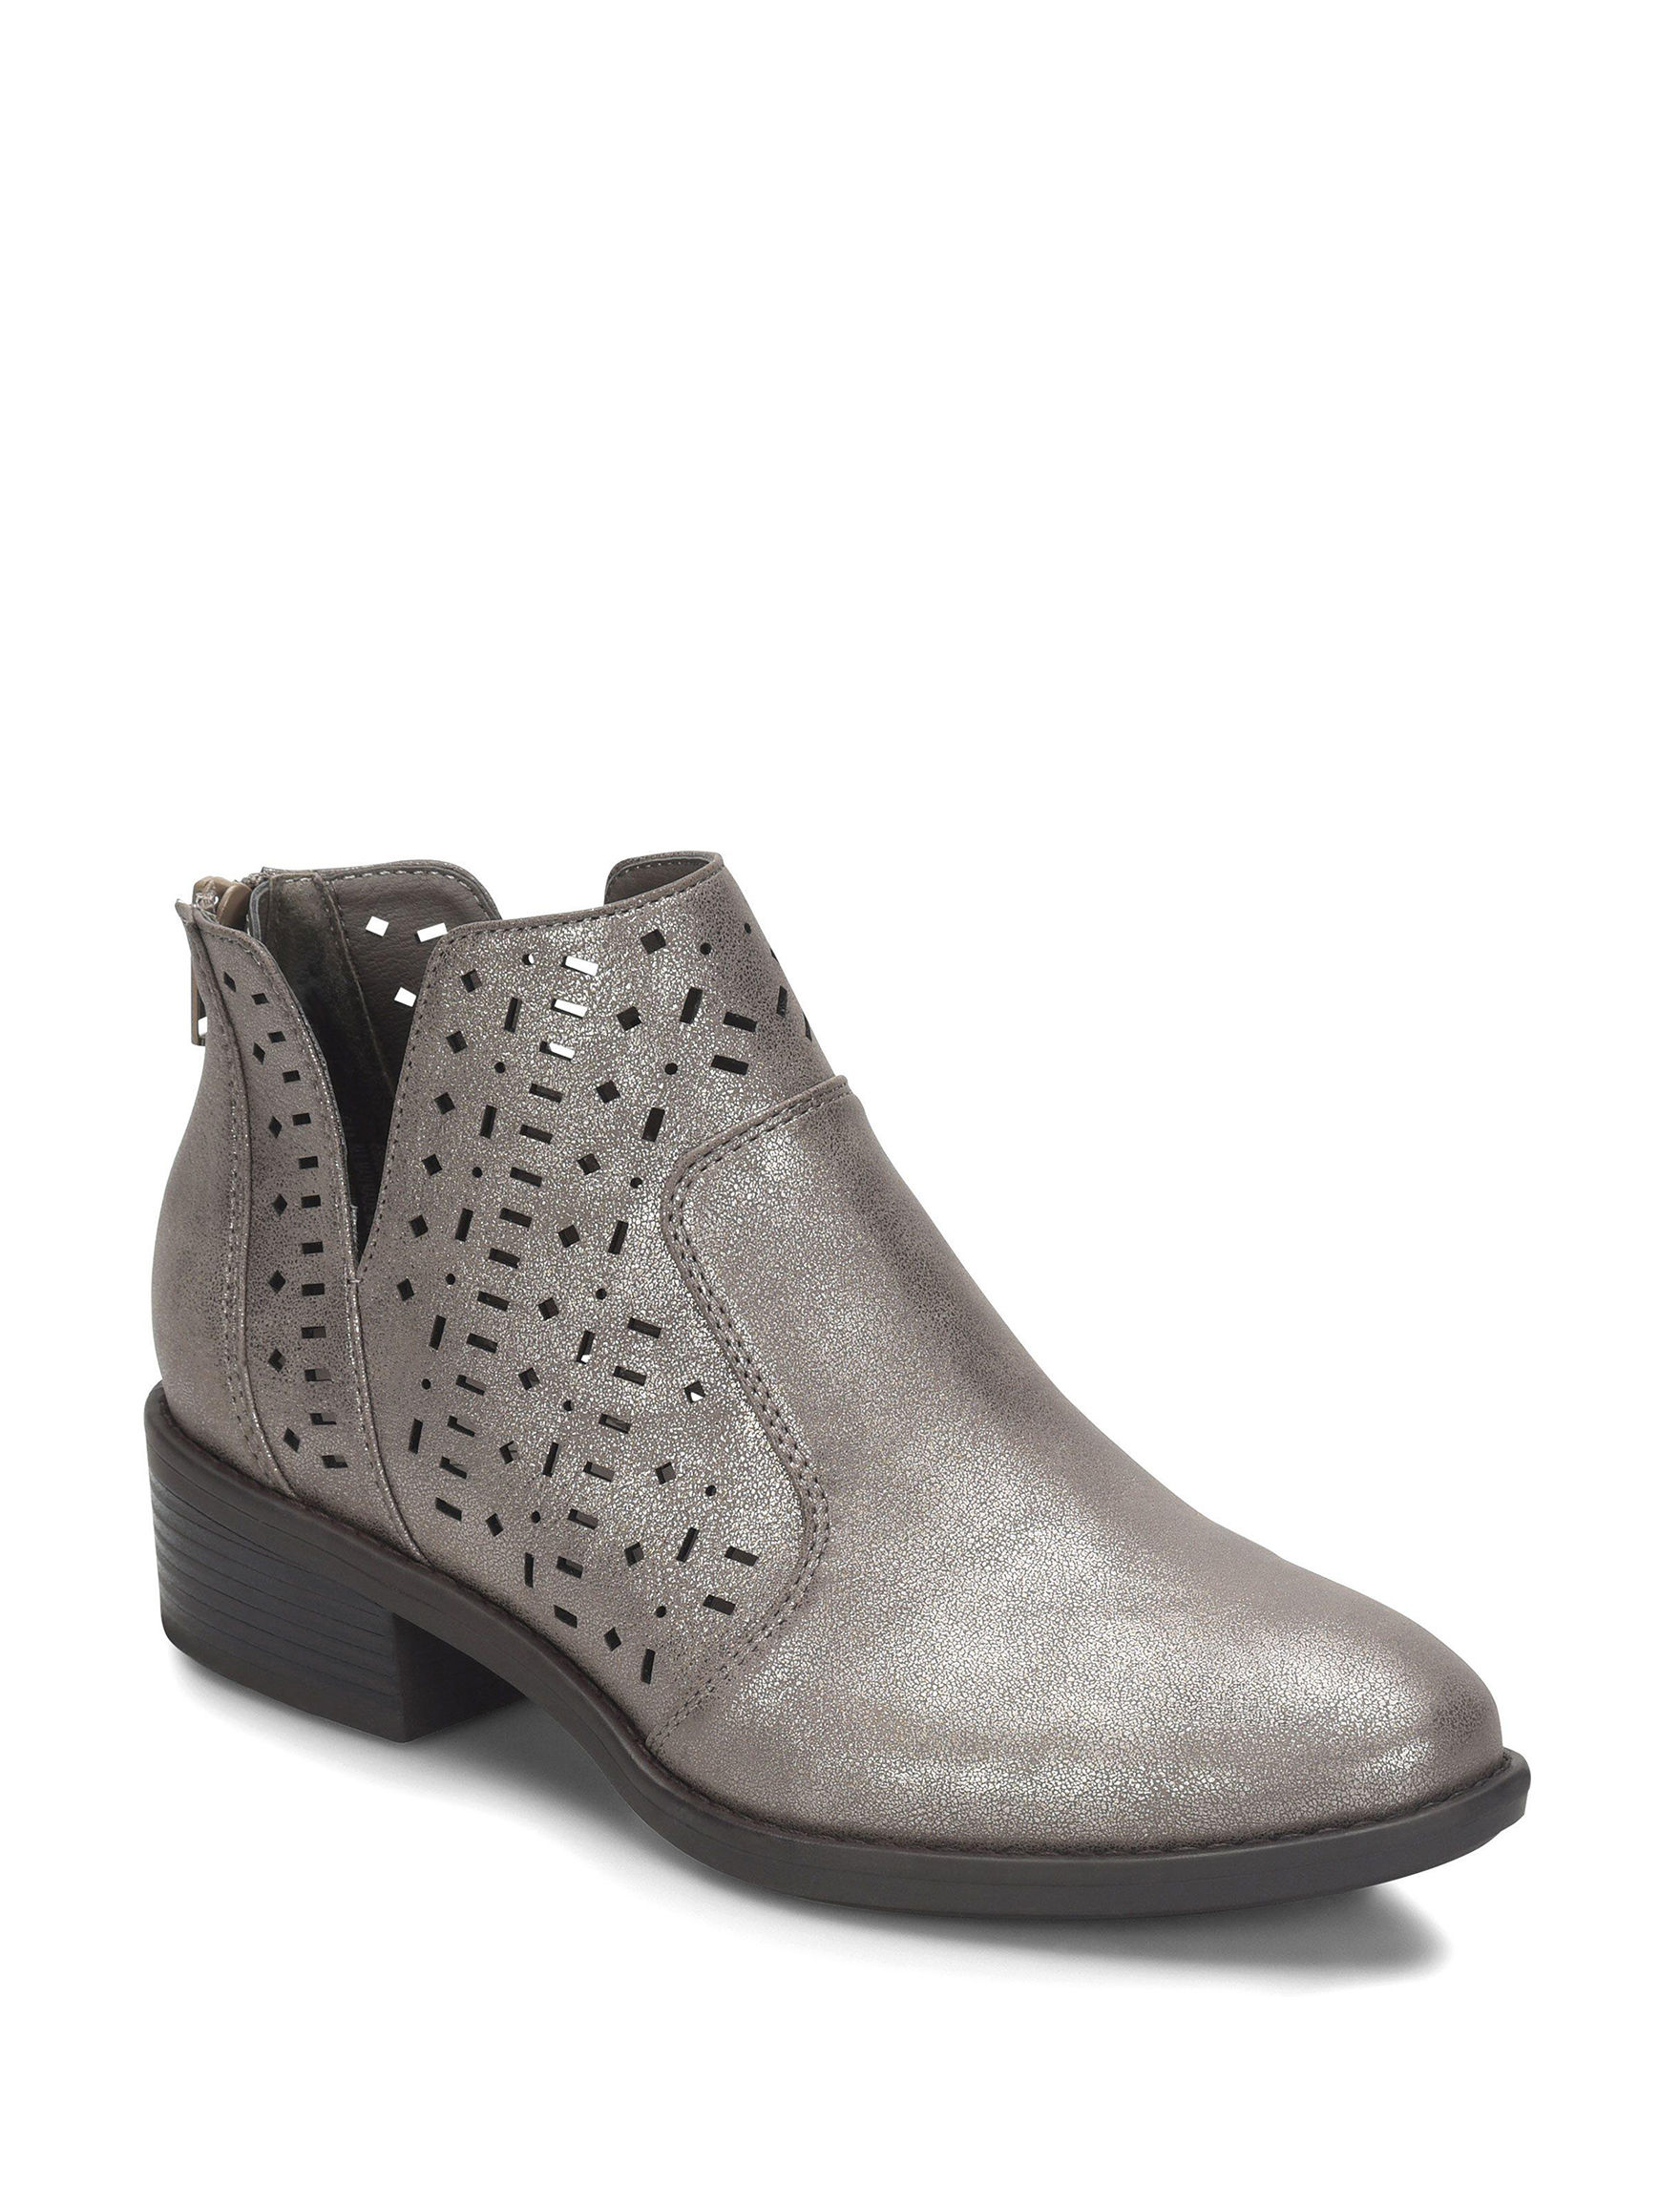 Eurosoft Smoke Ankle Boots & Booties